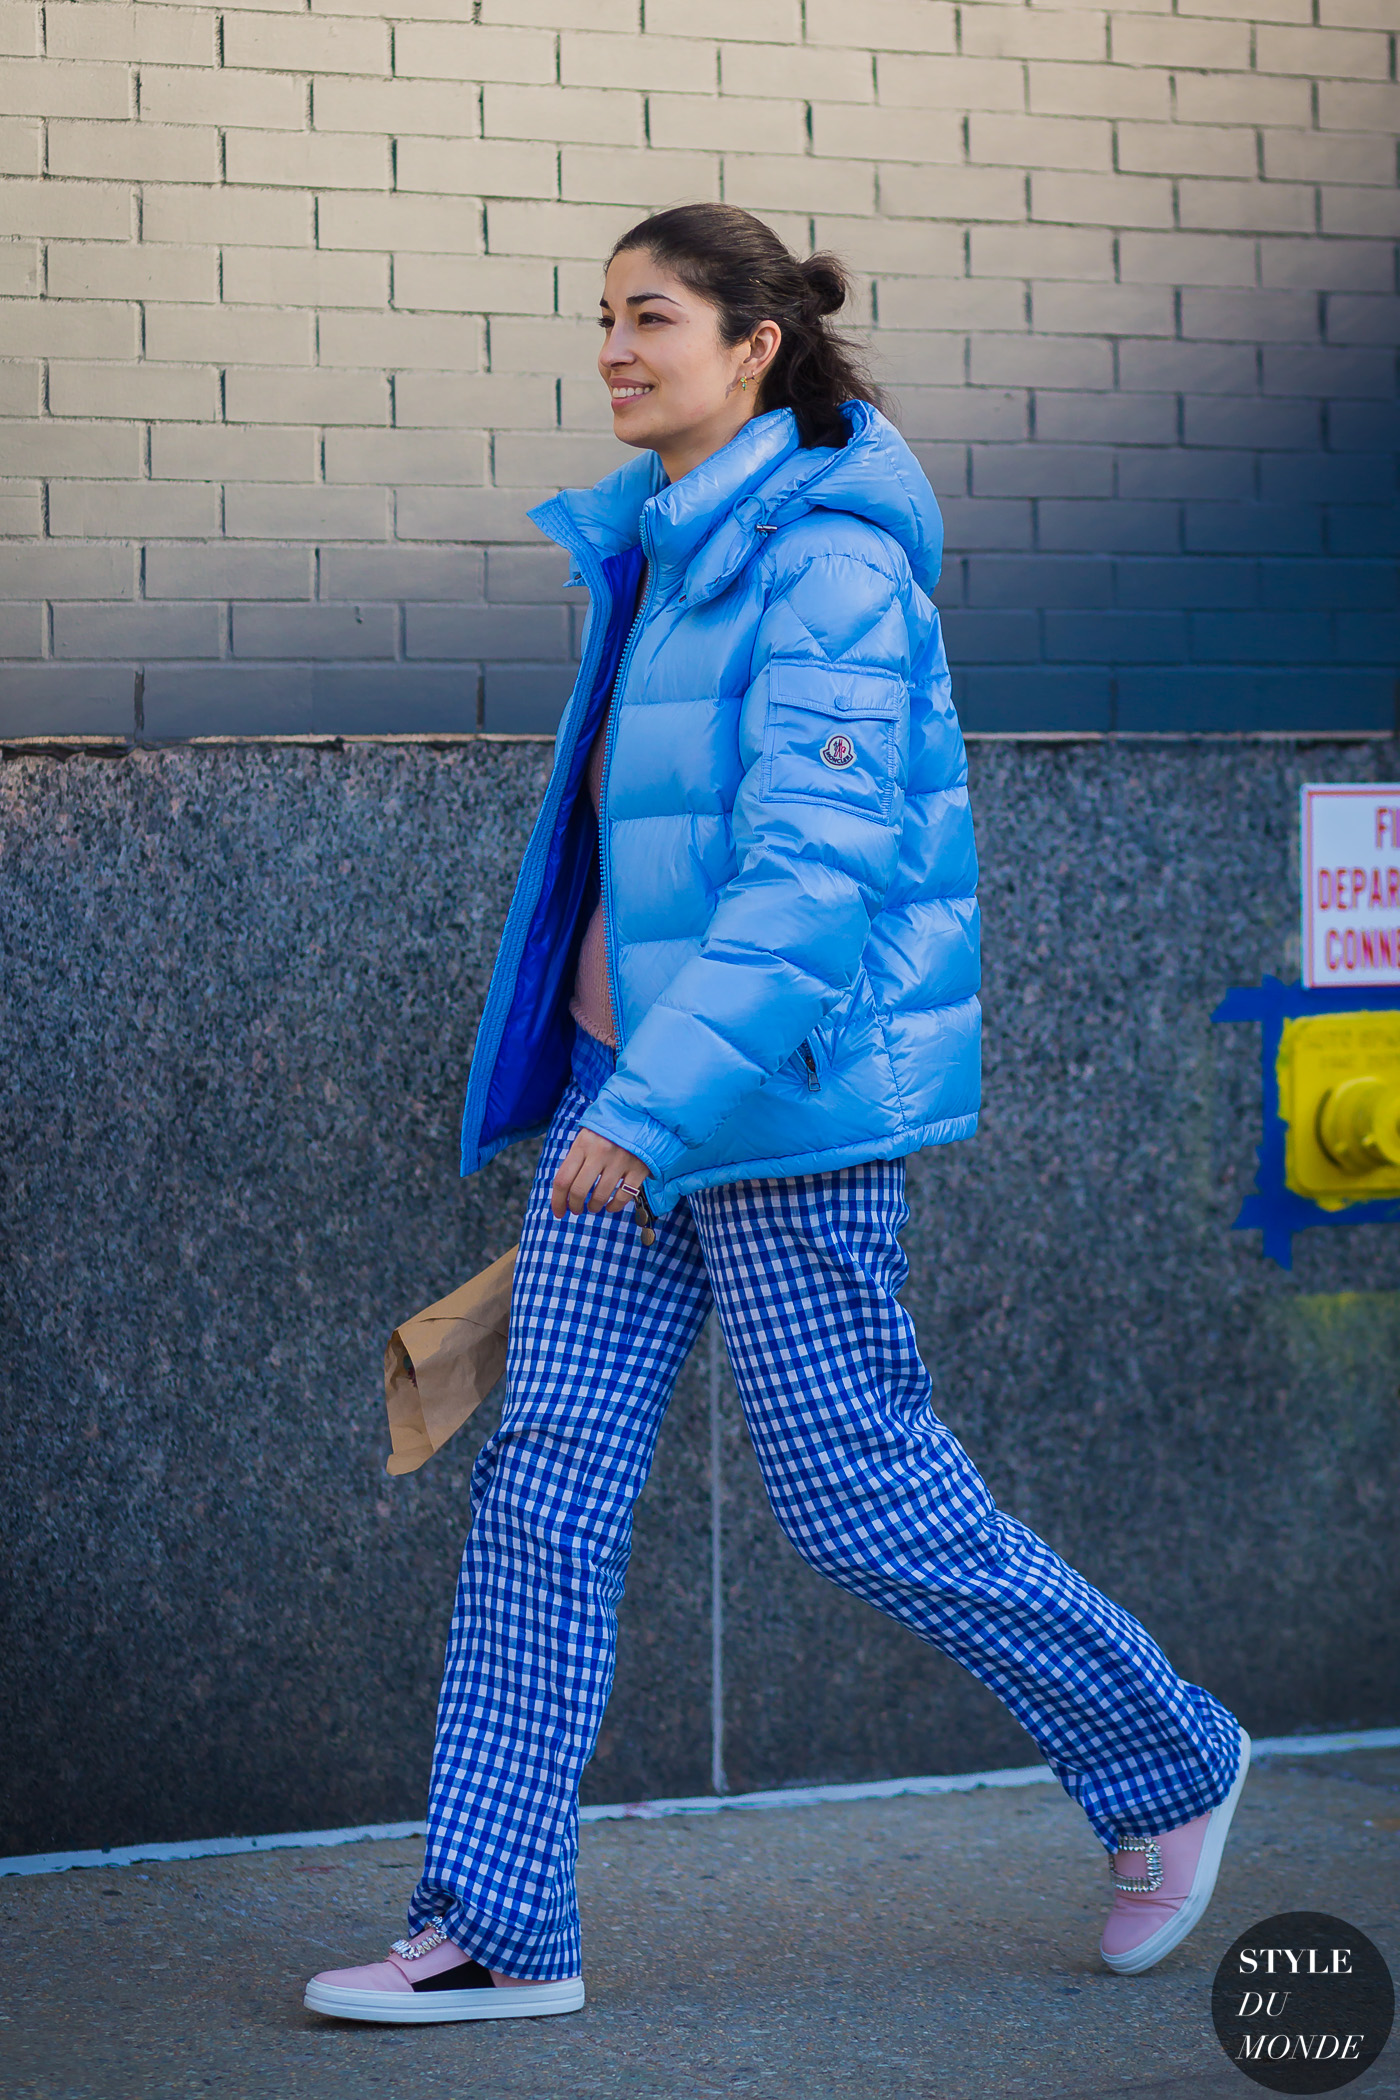 caroline-issa-by-styledumonde-street-style-fashion-photography